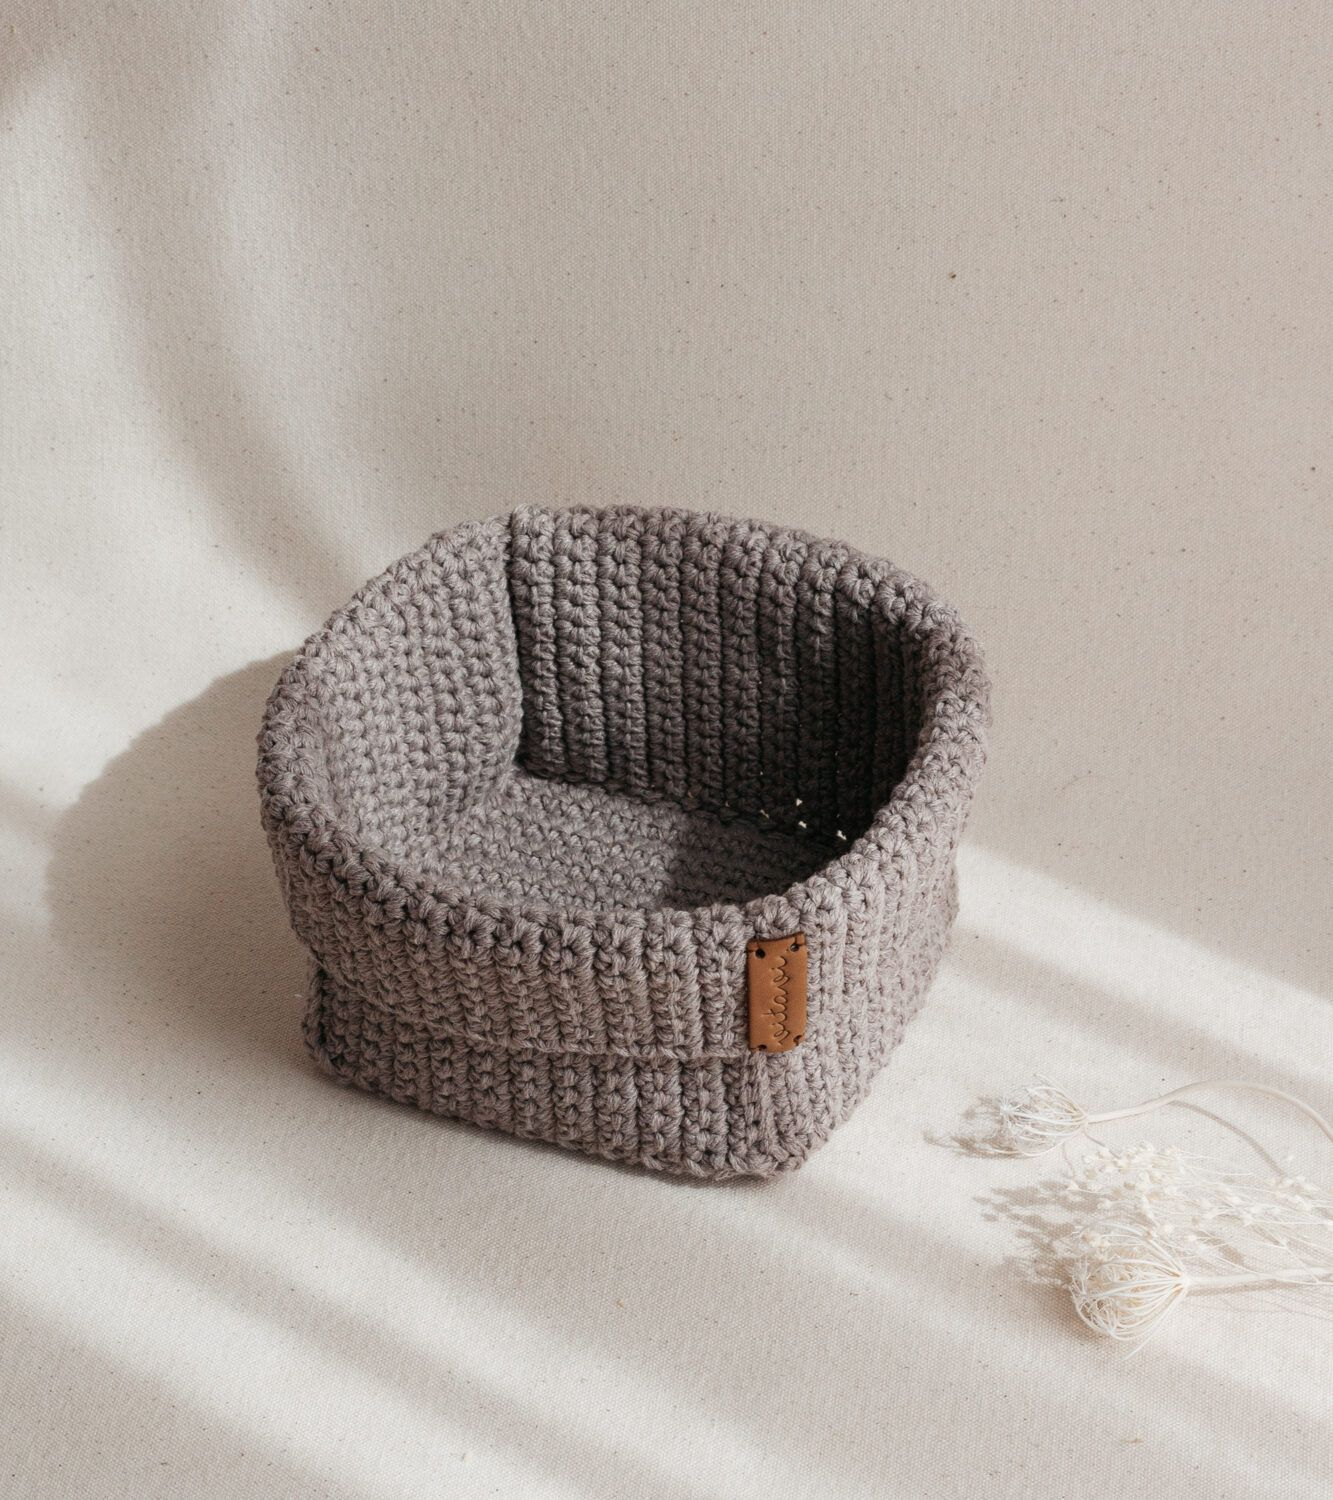 Big Handmade Crochet Basket - Brown